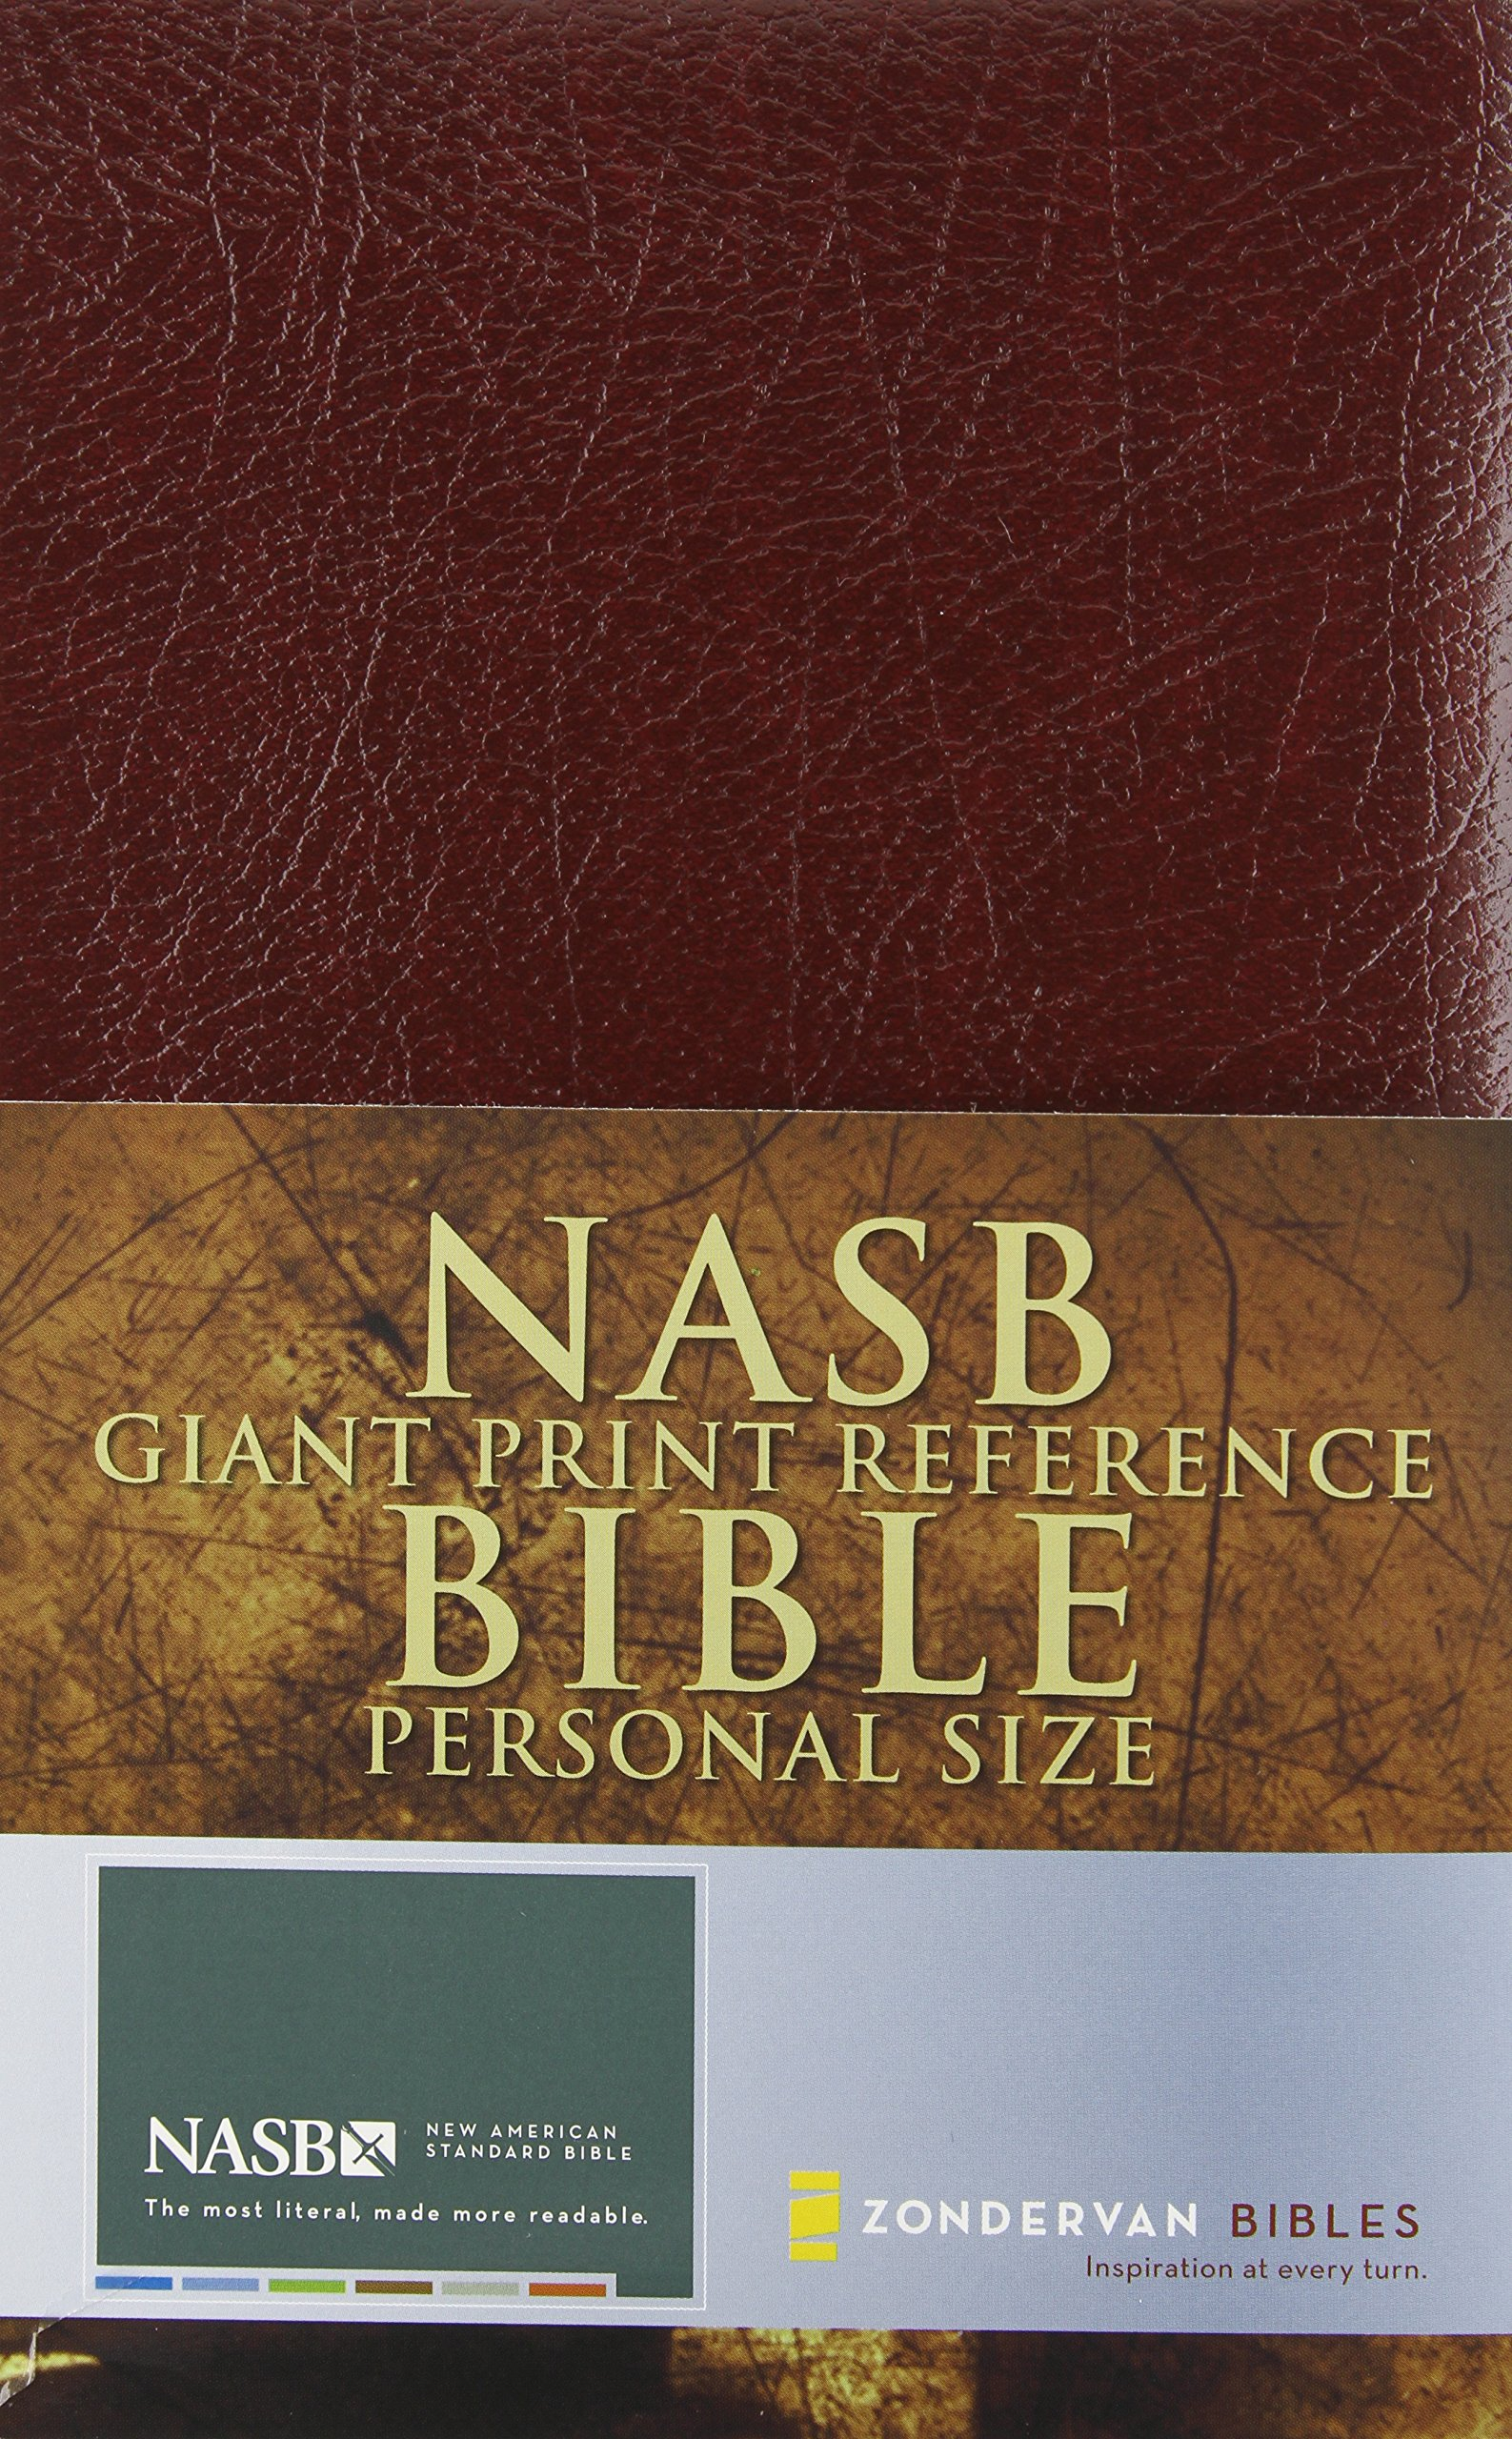 Nasb Giant Print Reference Bible Personal Size Zondervan 9780310916604 Amazon Com Books